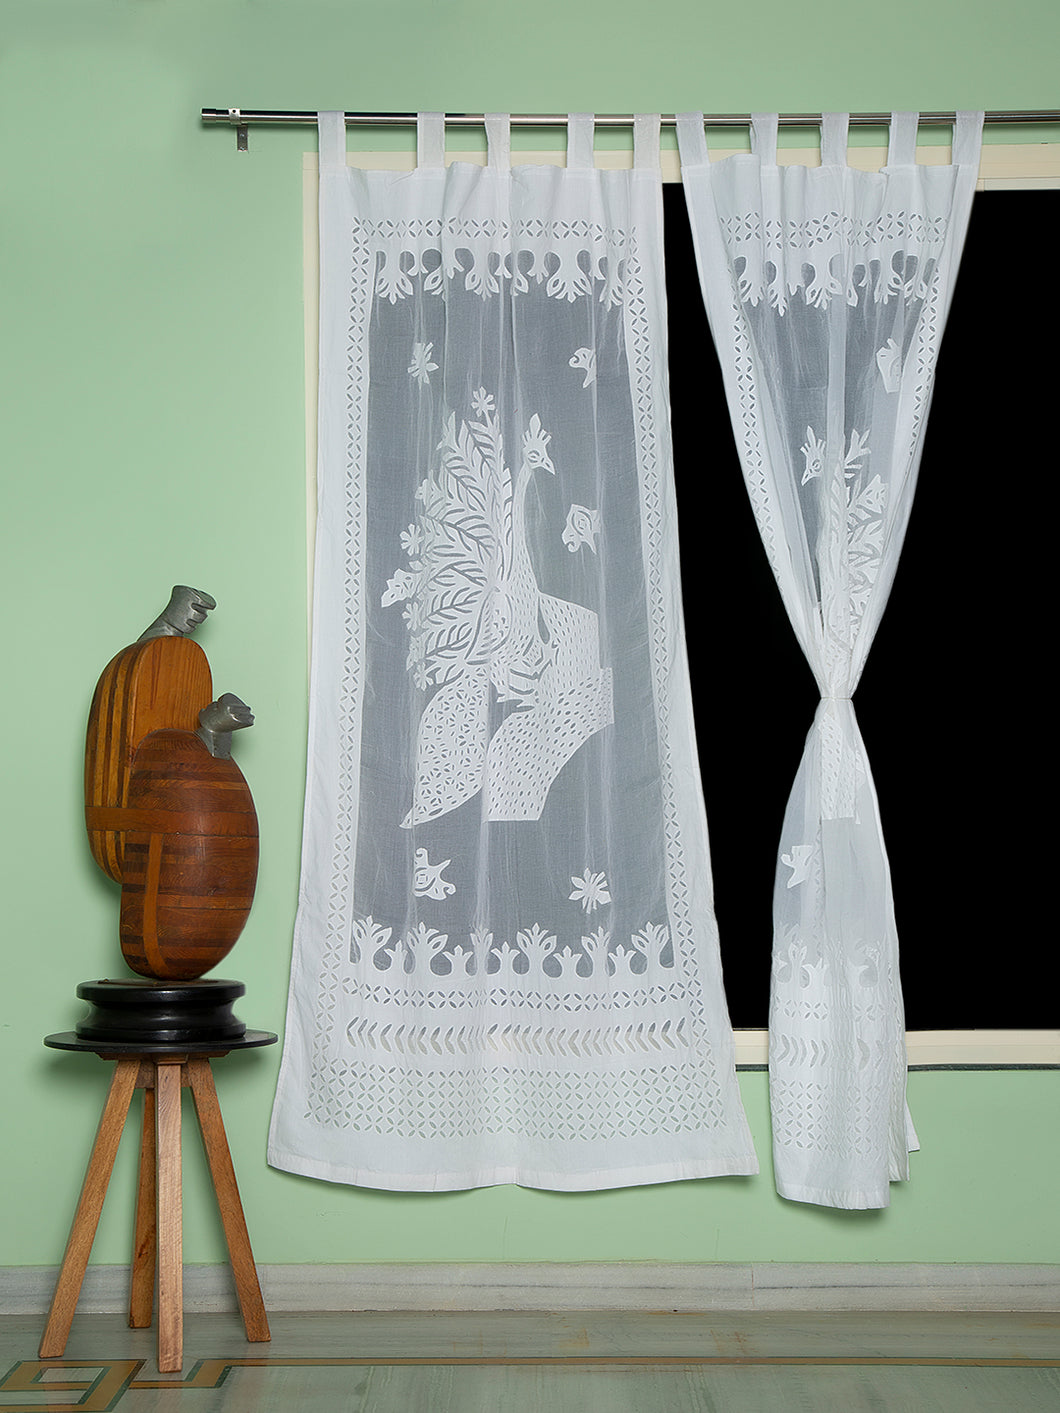 Applique, Handmade Curtains for Door/Window, Peacock Pattern, White